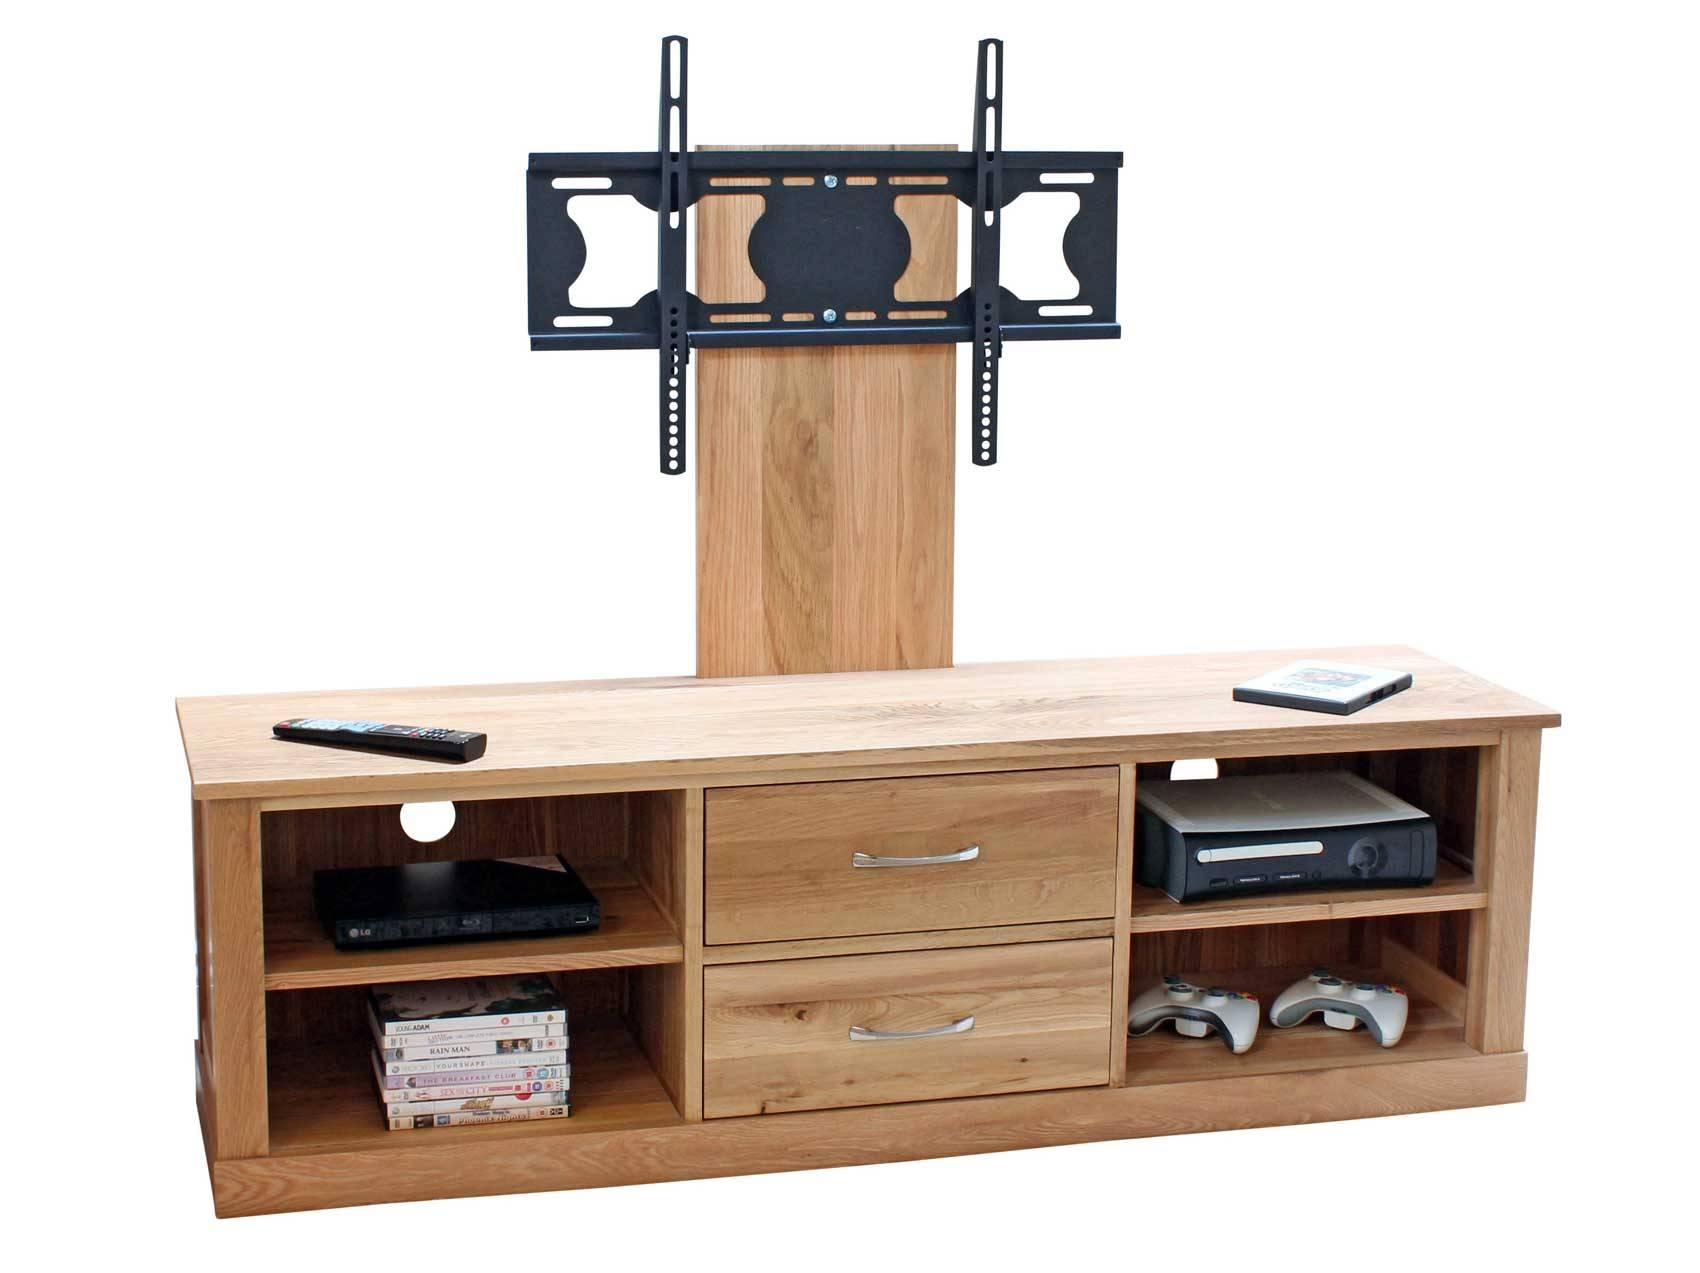 Oak Wooden Tv Stand With Mount For Flat Screen Of 14 Gorgeous Throughout Oak Tv Cabinets For Flat Screens With Doors (View 6 of 15)